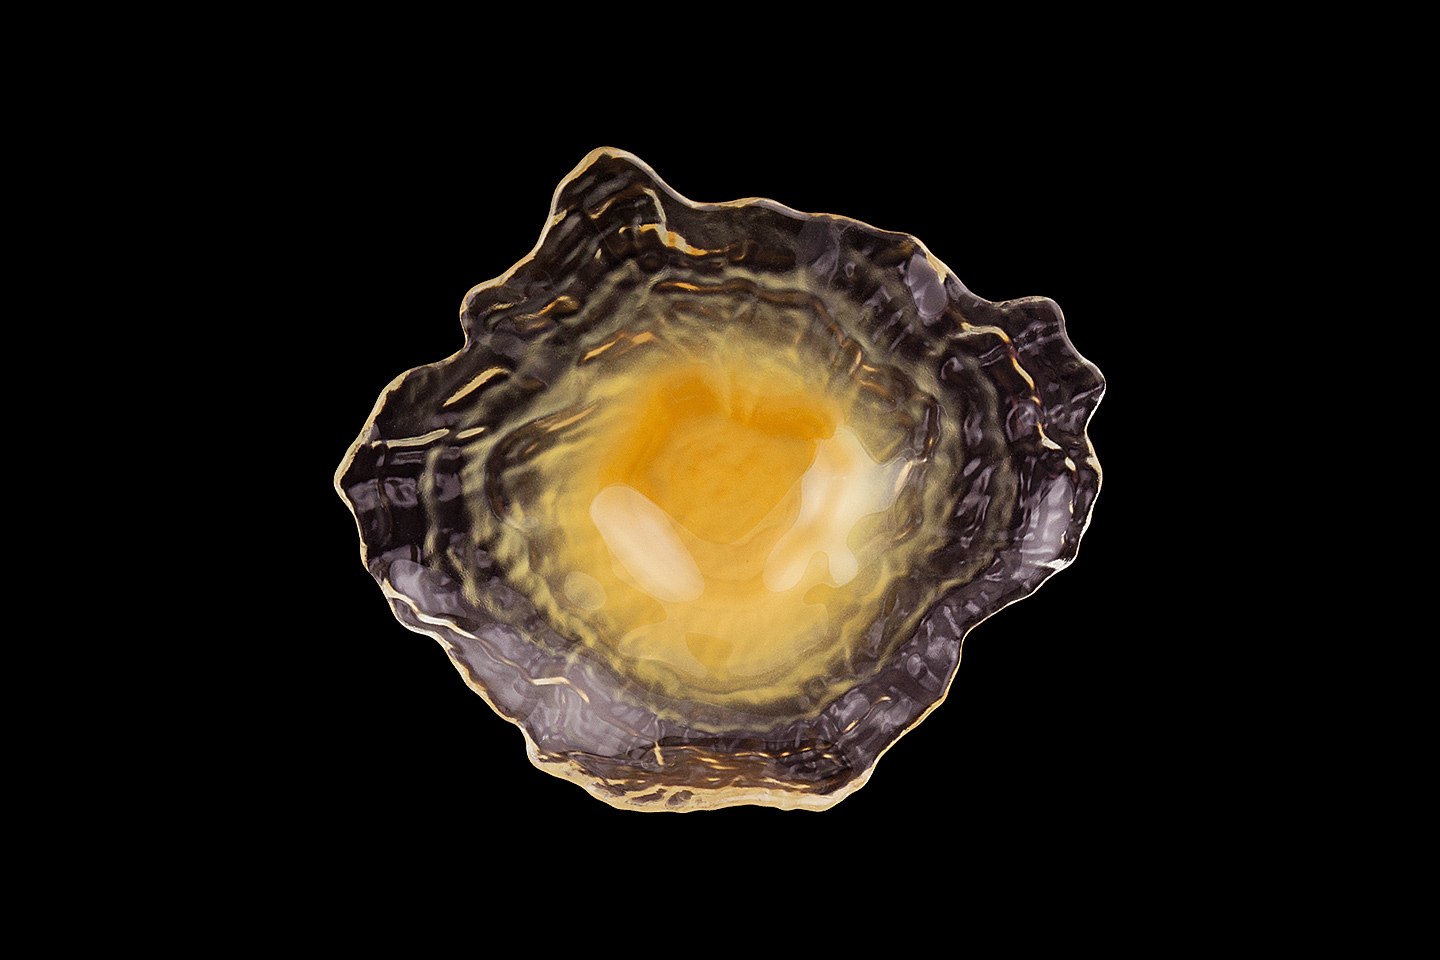 a huge image enlargement of the mandarin orange trading company oyster plate in yellow